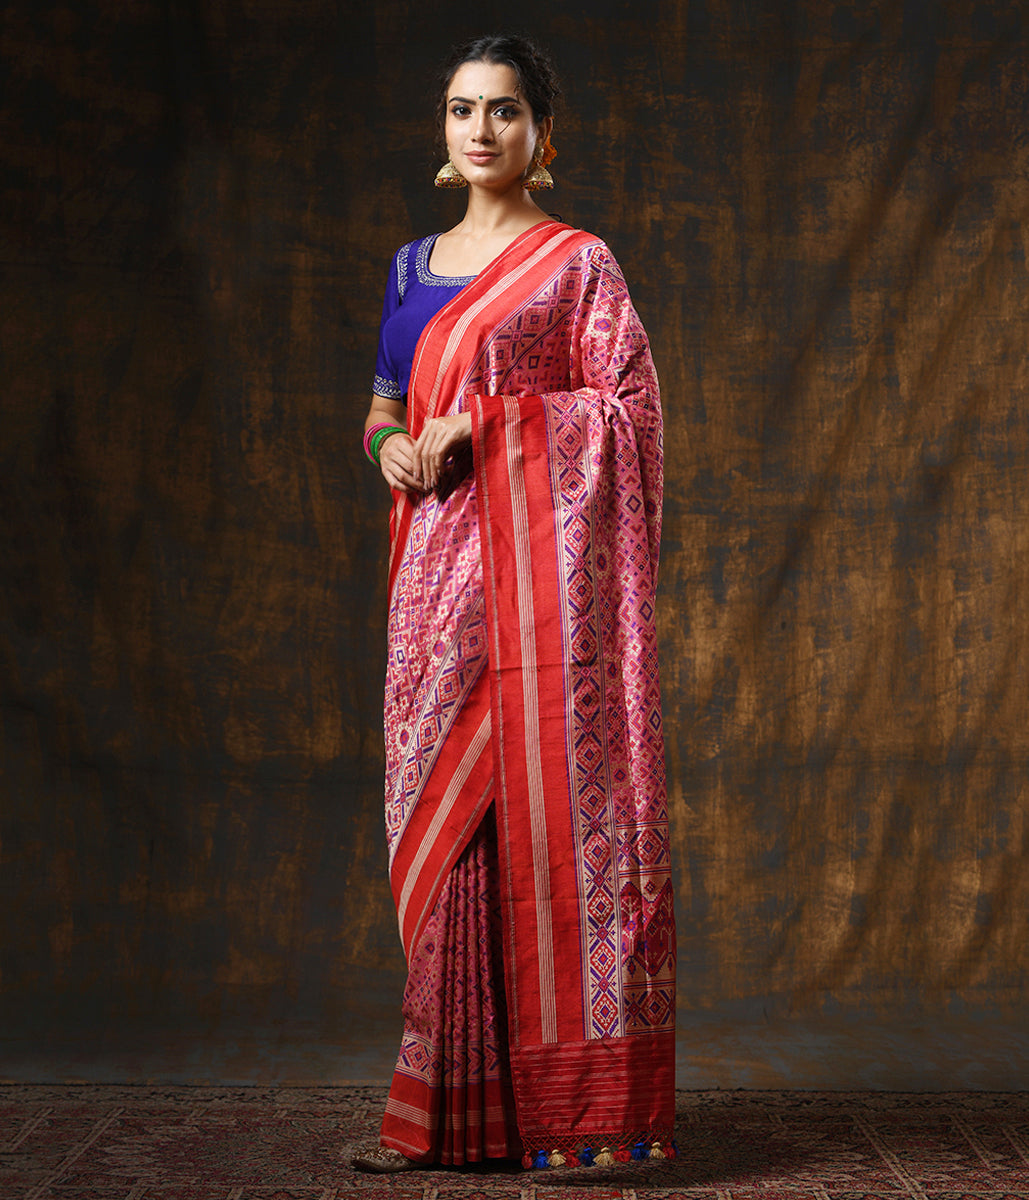 Handwoven Pink Meenakari Banarasi Patola with Silk Borders